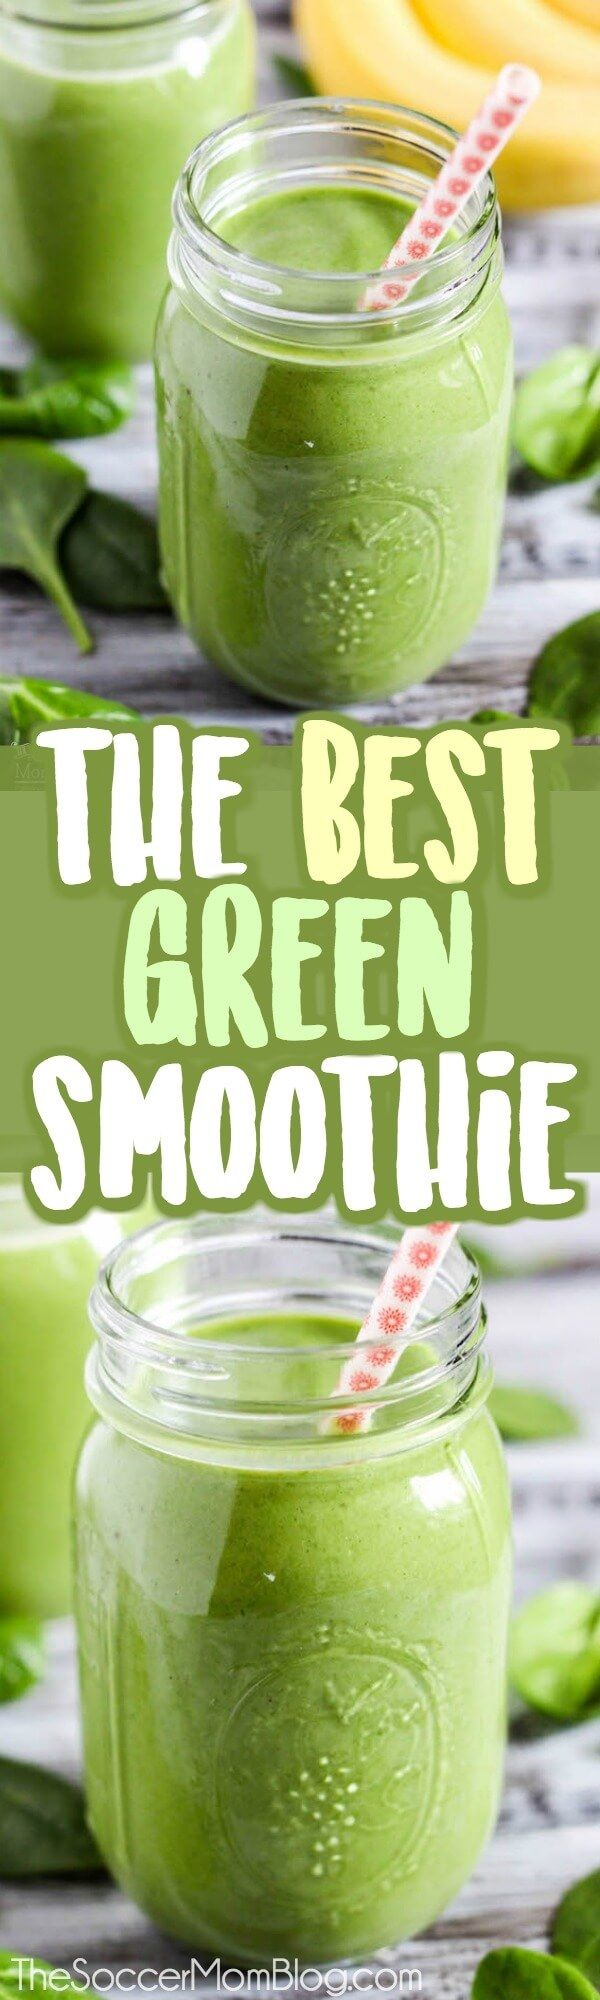 Green, good-for-you, AND tastes amazing?! Seriously, this is the BEST green protein smoothie ever! Forget those slimy-looking drinks you USED to choke down in the name of health...this healthy green smoothie is absolutely delicious!! #protein #glutenfree #dairyfree #smoothie via @https://www.pinterest.com/soccermomblog